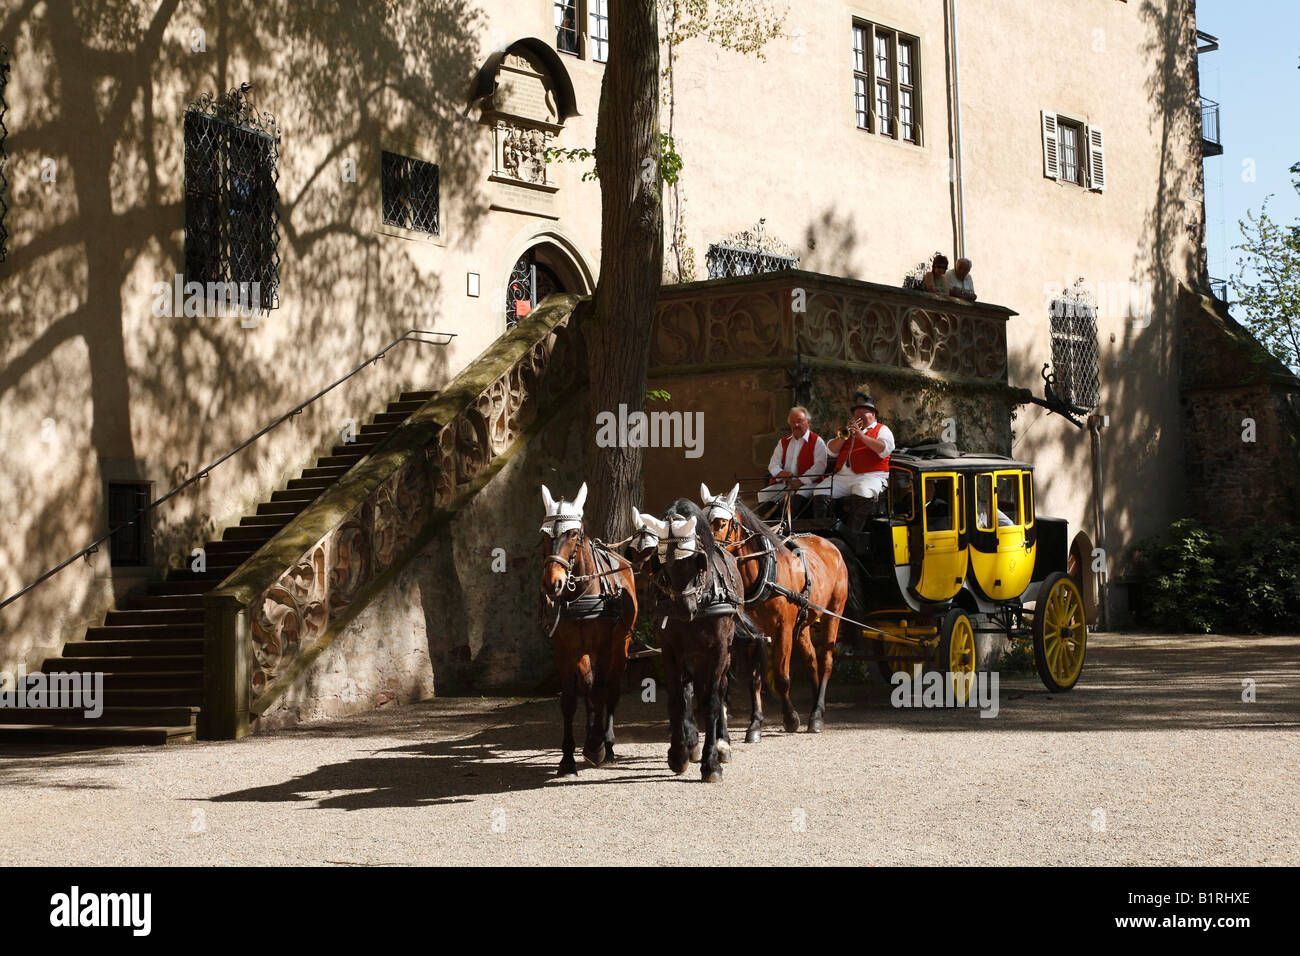 Postal carriage in front of Schloss Aschach Palace, Bad Bocklet, Rhoen Mountains, Lower Franconia, Bavaria, Germany, - Stock Image